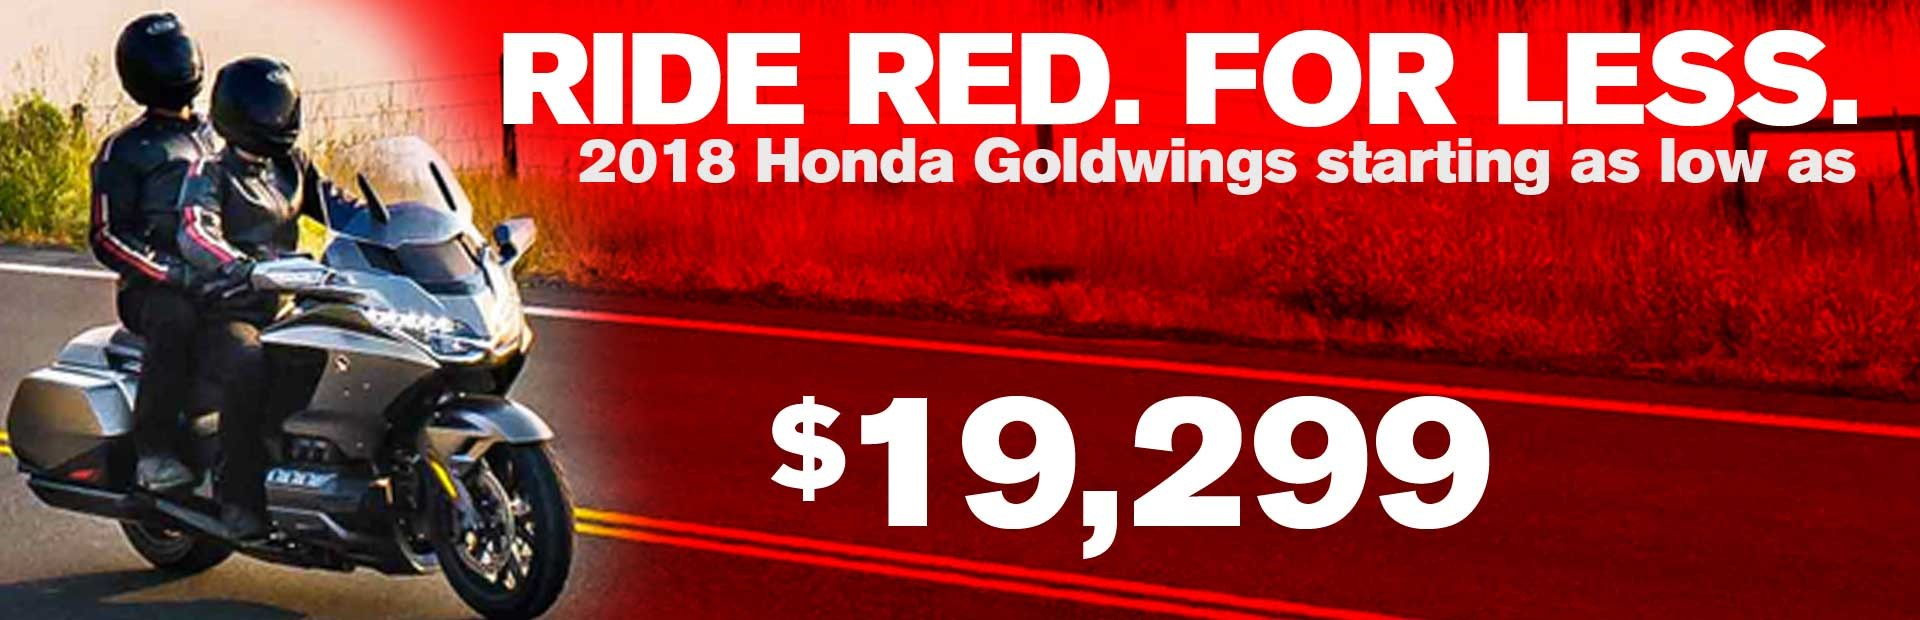 2018 Goldwing Nov 2018 offer